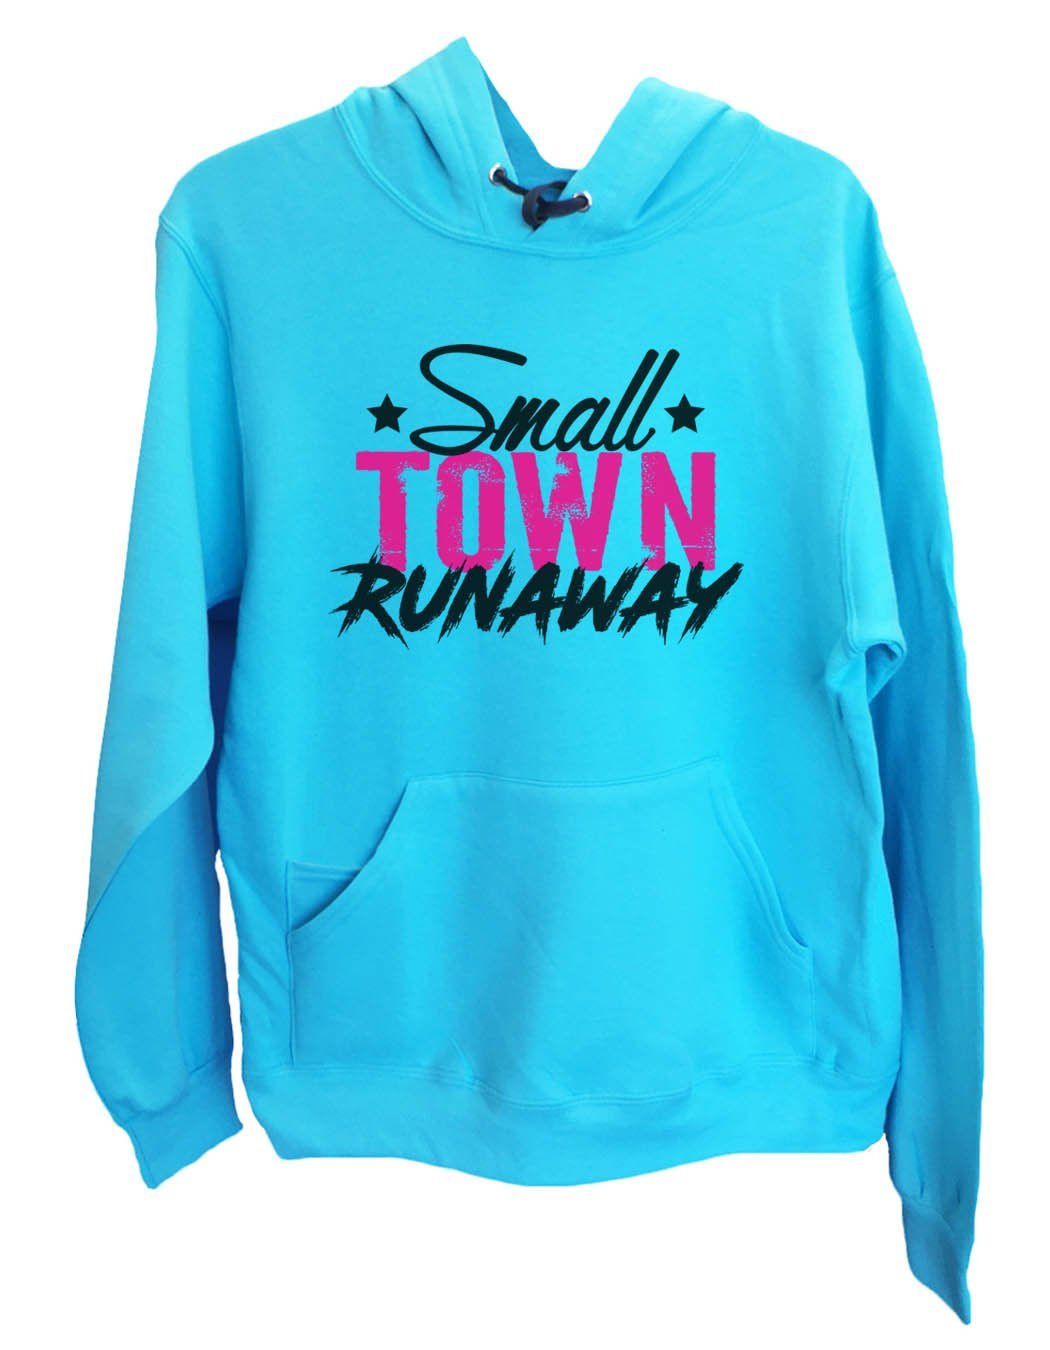 UNISEX HOODIE - Small town runaway - FUNNY MENS AND WOMENS HOODED SWEATSHIRTS - 572 Funny Shirt